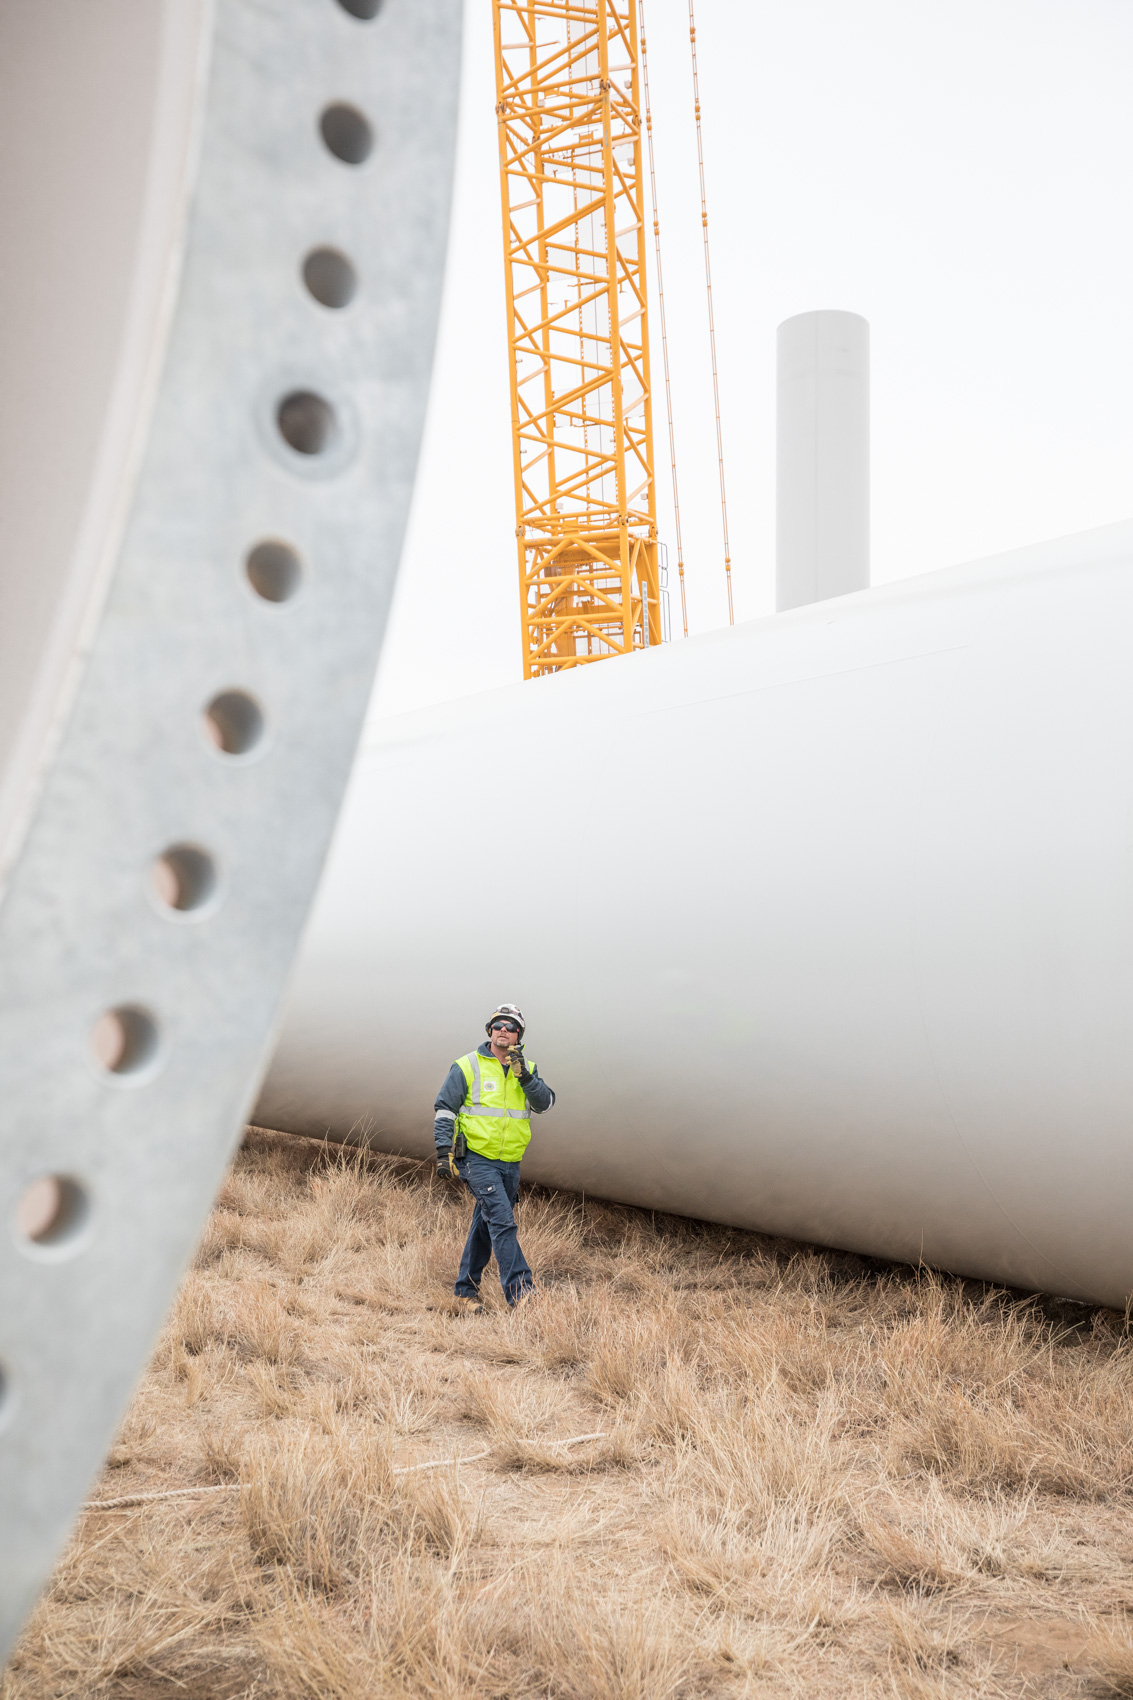 Wind turbine farm being build minimalist photography by Rich Crowder